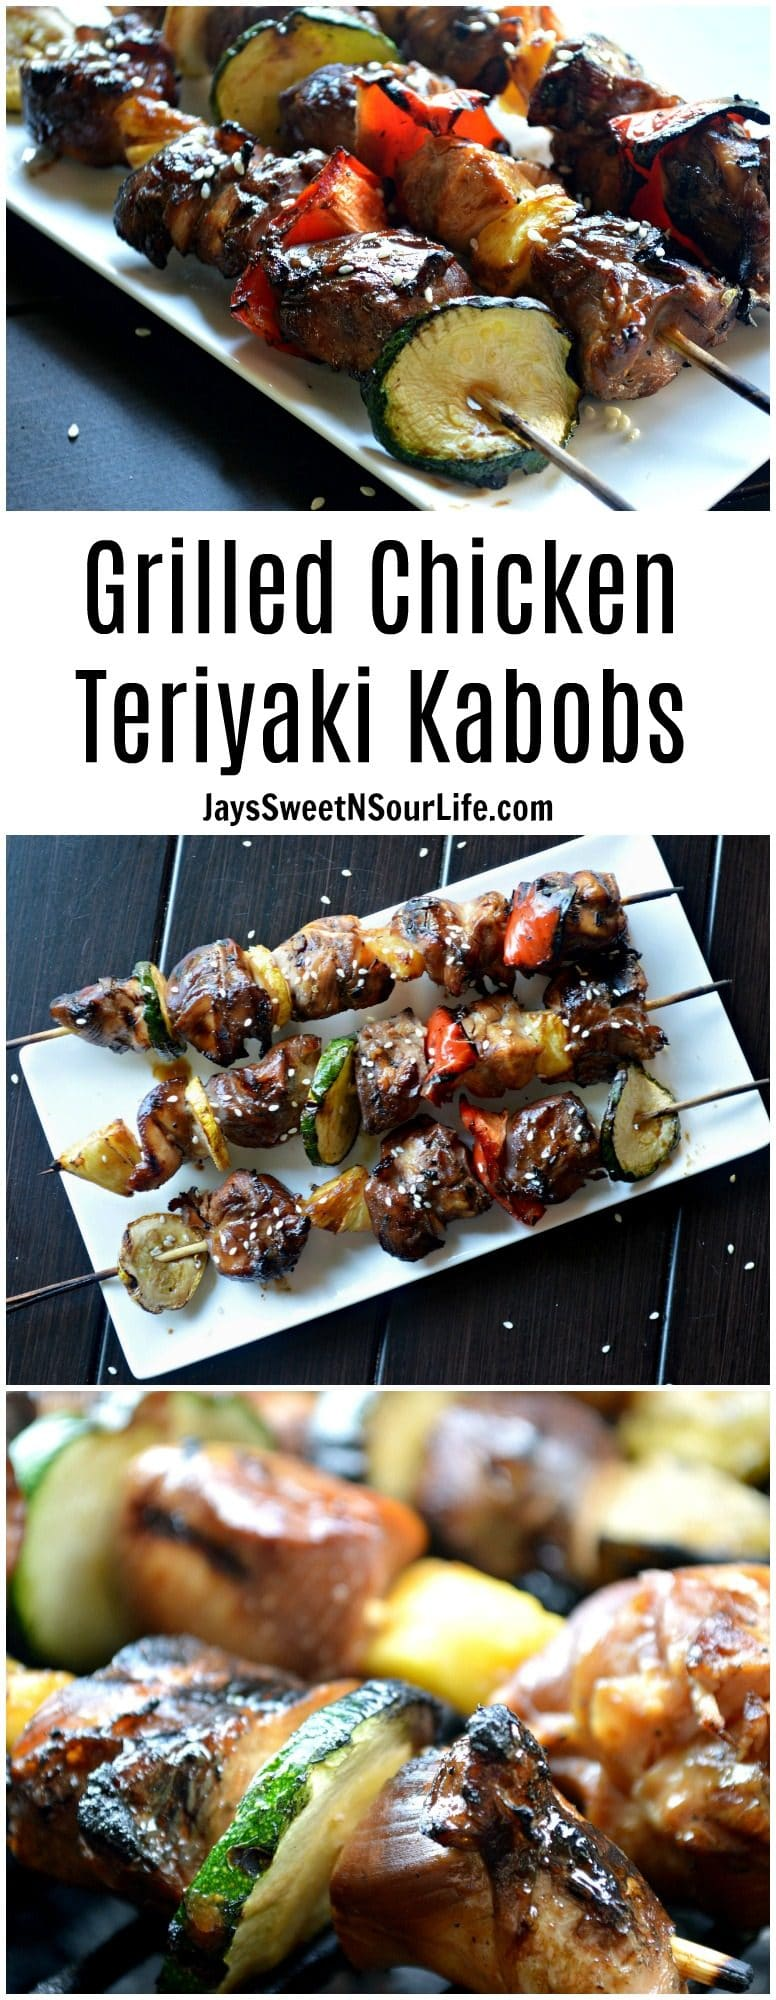 Spice up your backyard BBQ with this Grilled Chicken Teriyaki Kabobs recipe. Easy to make and oh so delicious.